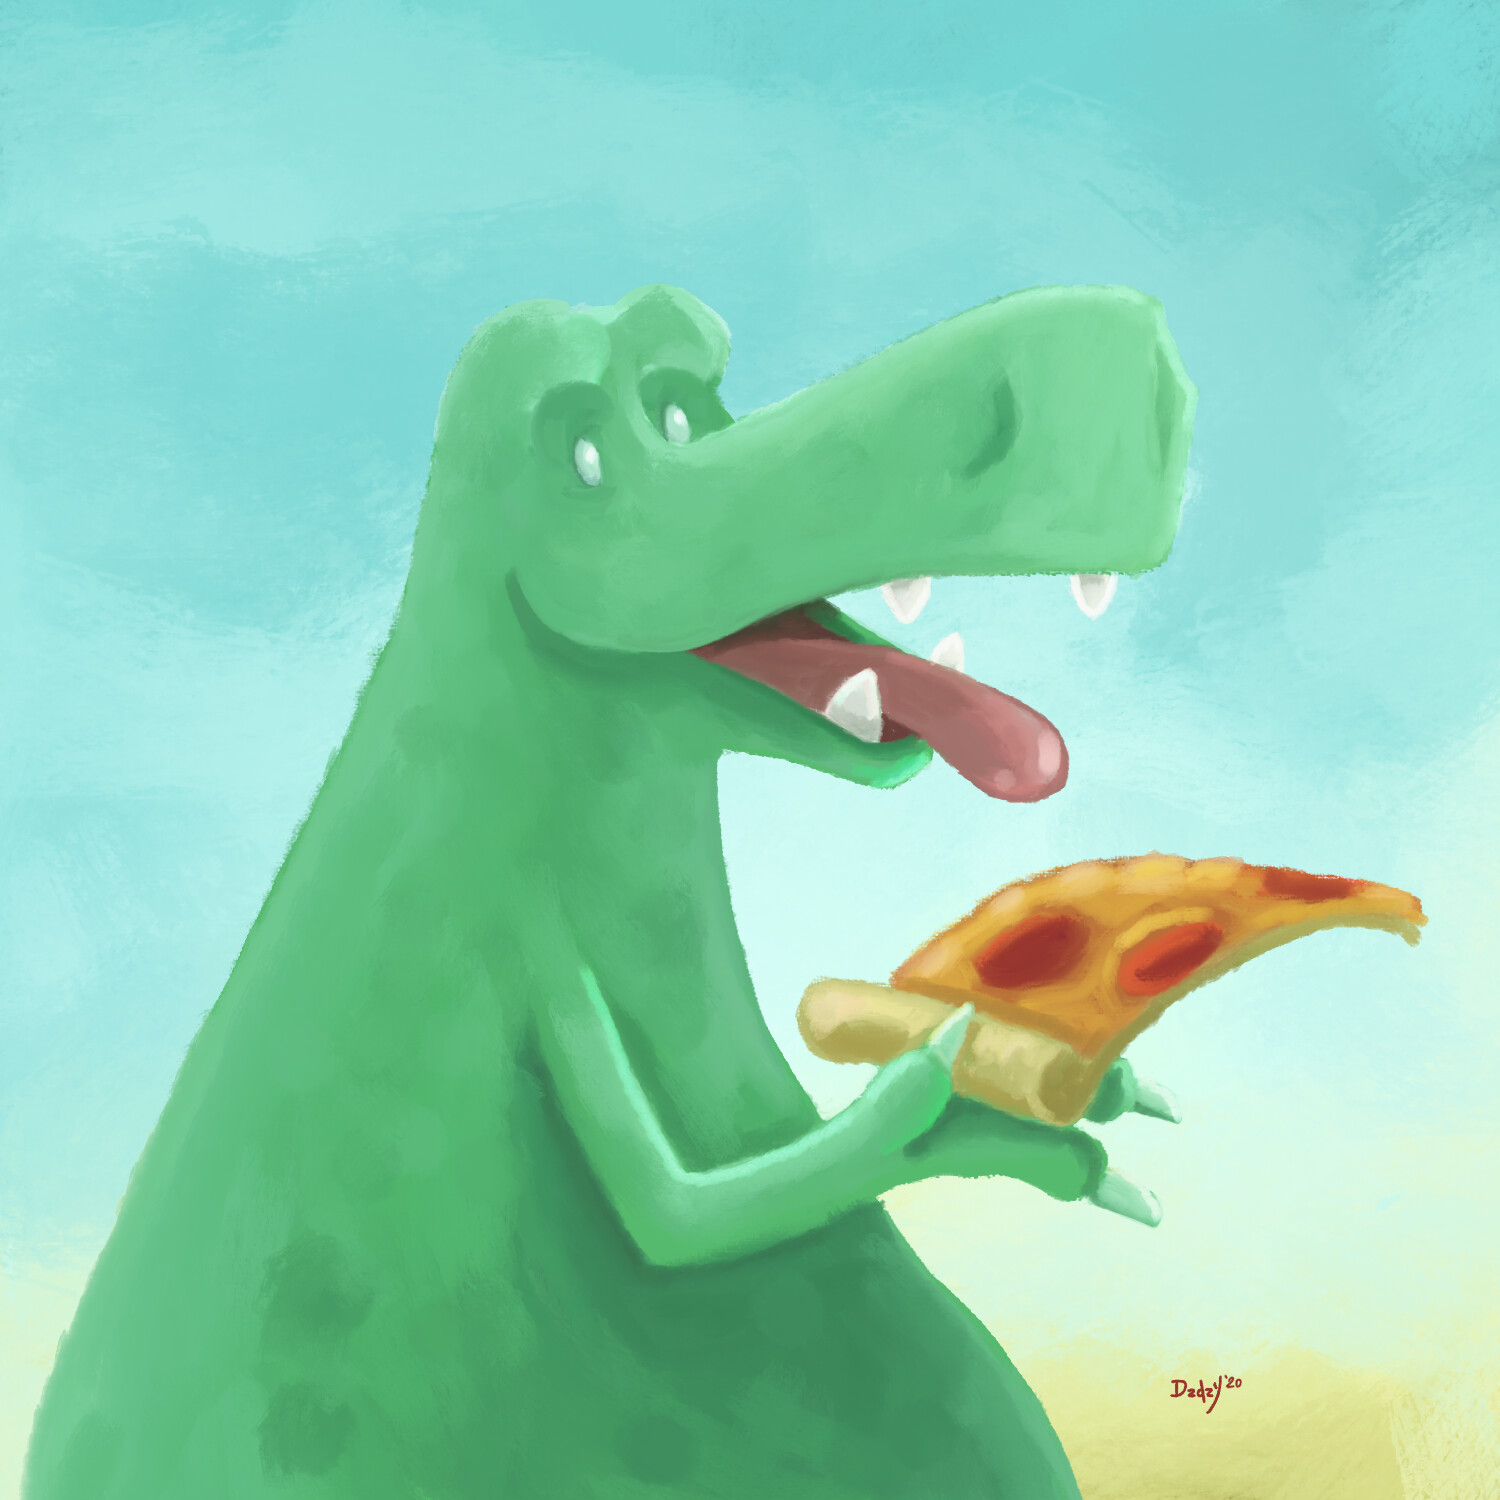 Dino's favorite thing is pizza!